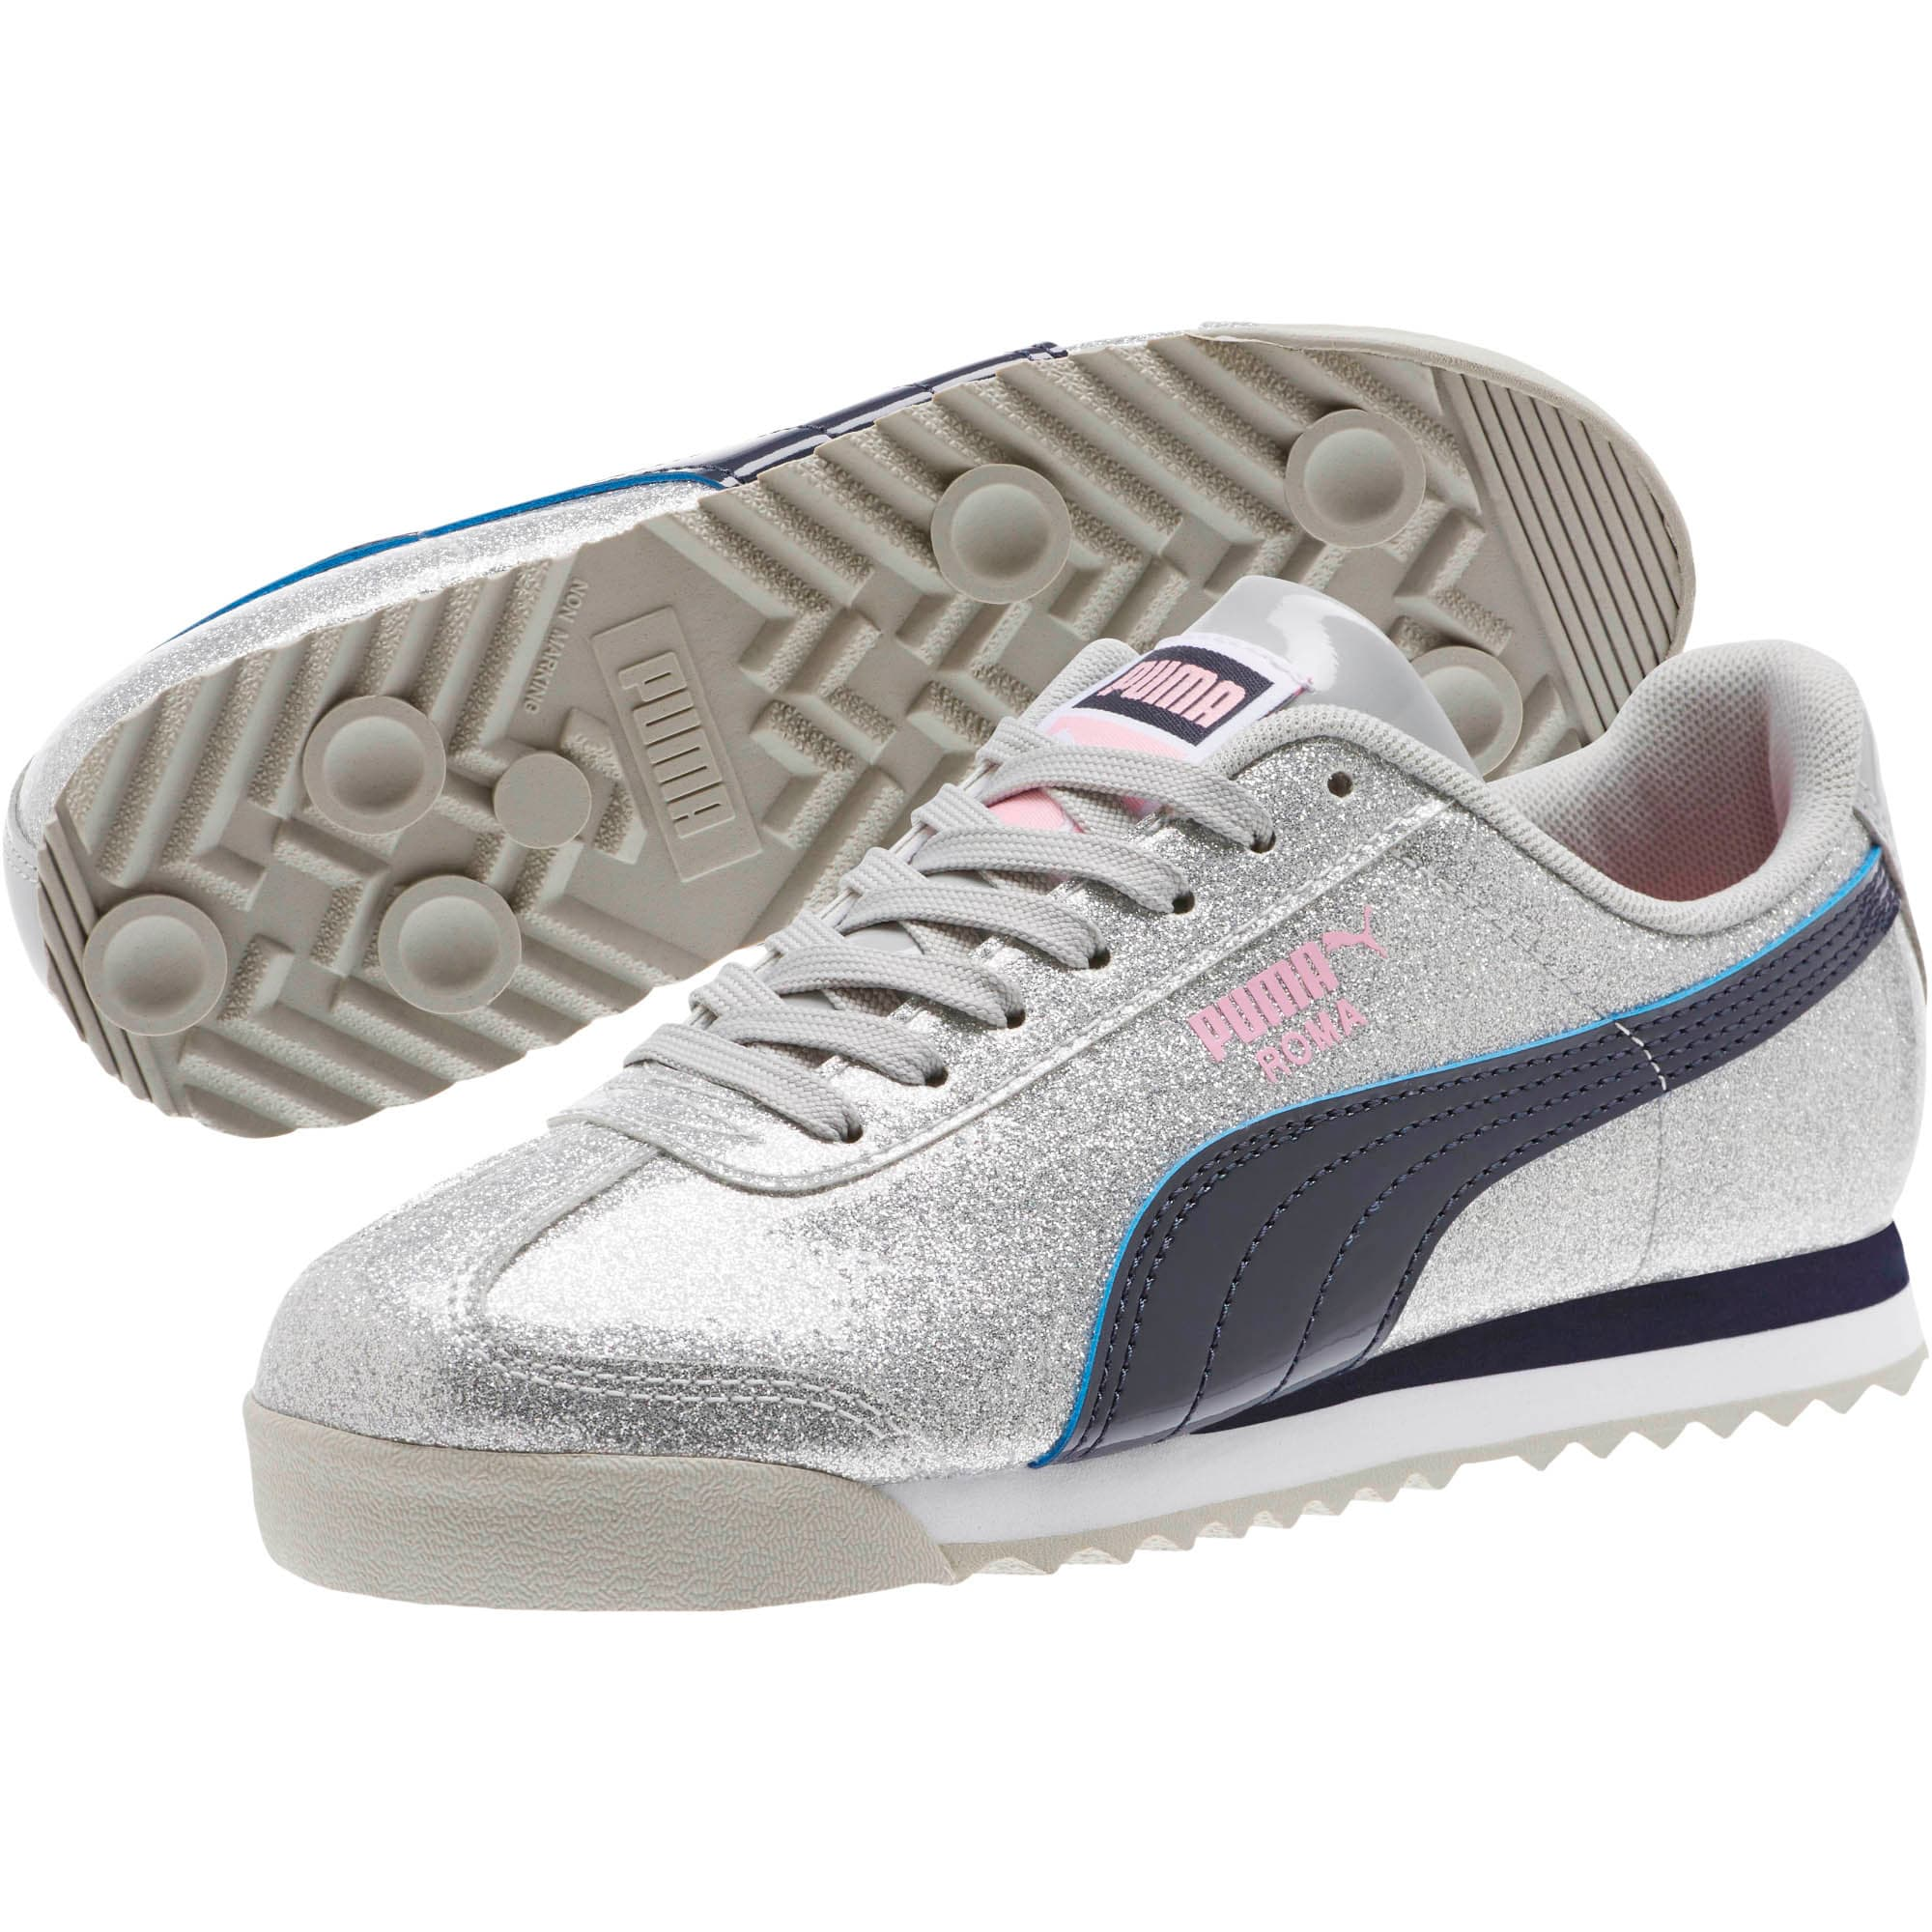 Thumbnail 2 of Roma Glam Sneakers JR, Gray Violet-Peacoat, medium